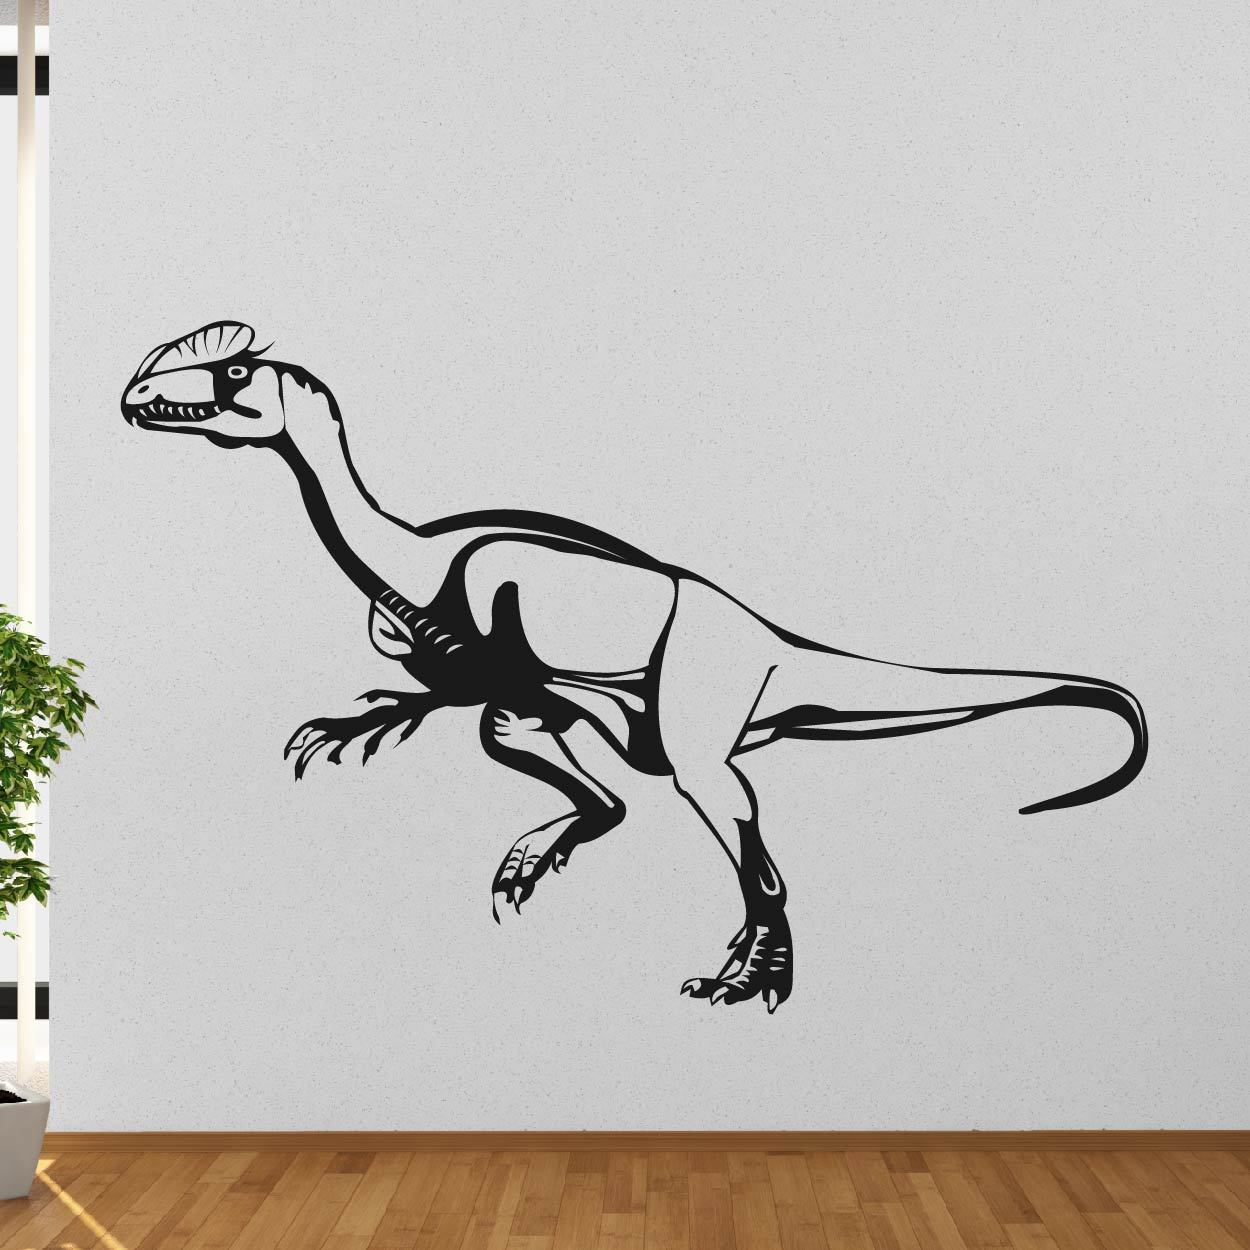 Velociraptor Dinosaur Wall Art Sticker (AS10344) - Apex Stickers